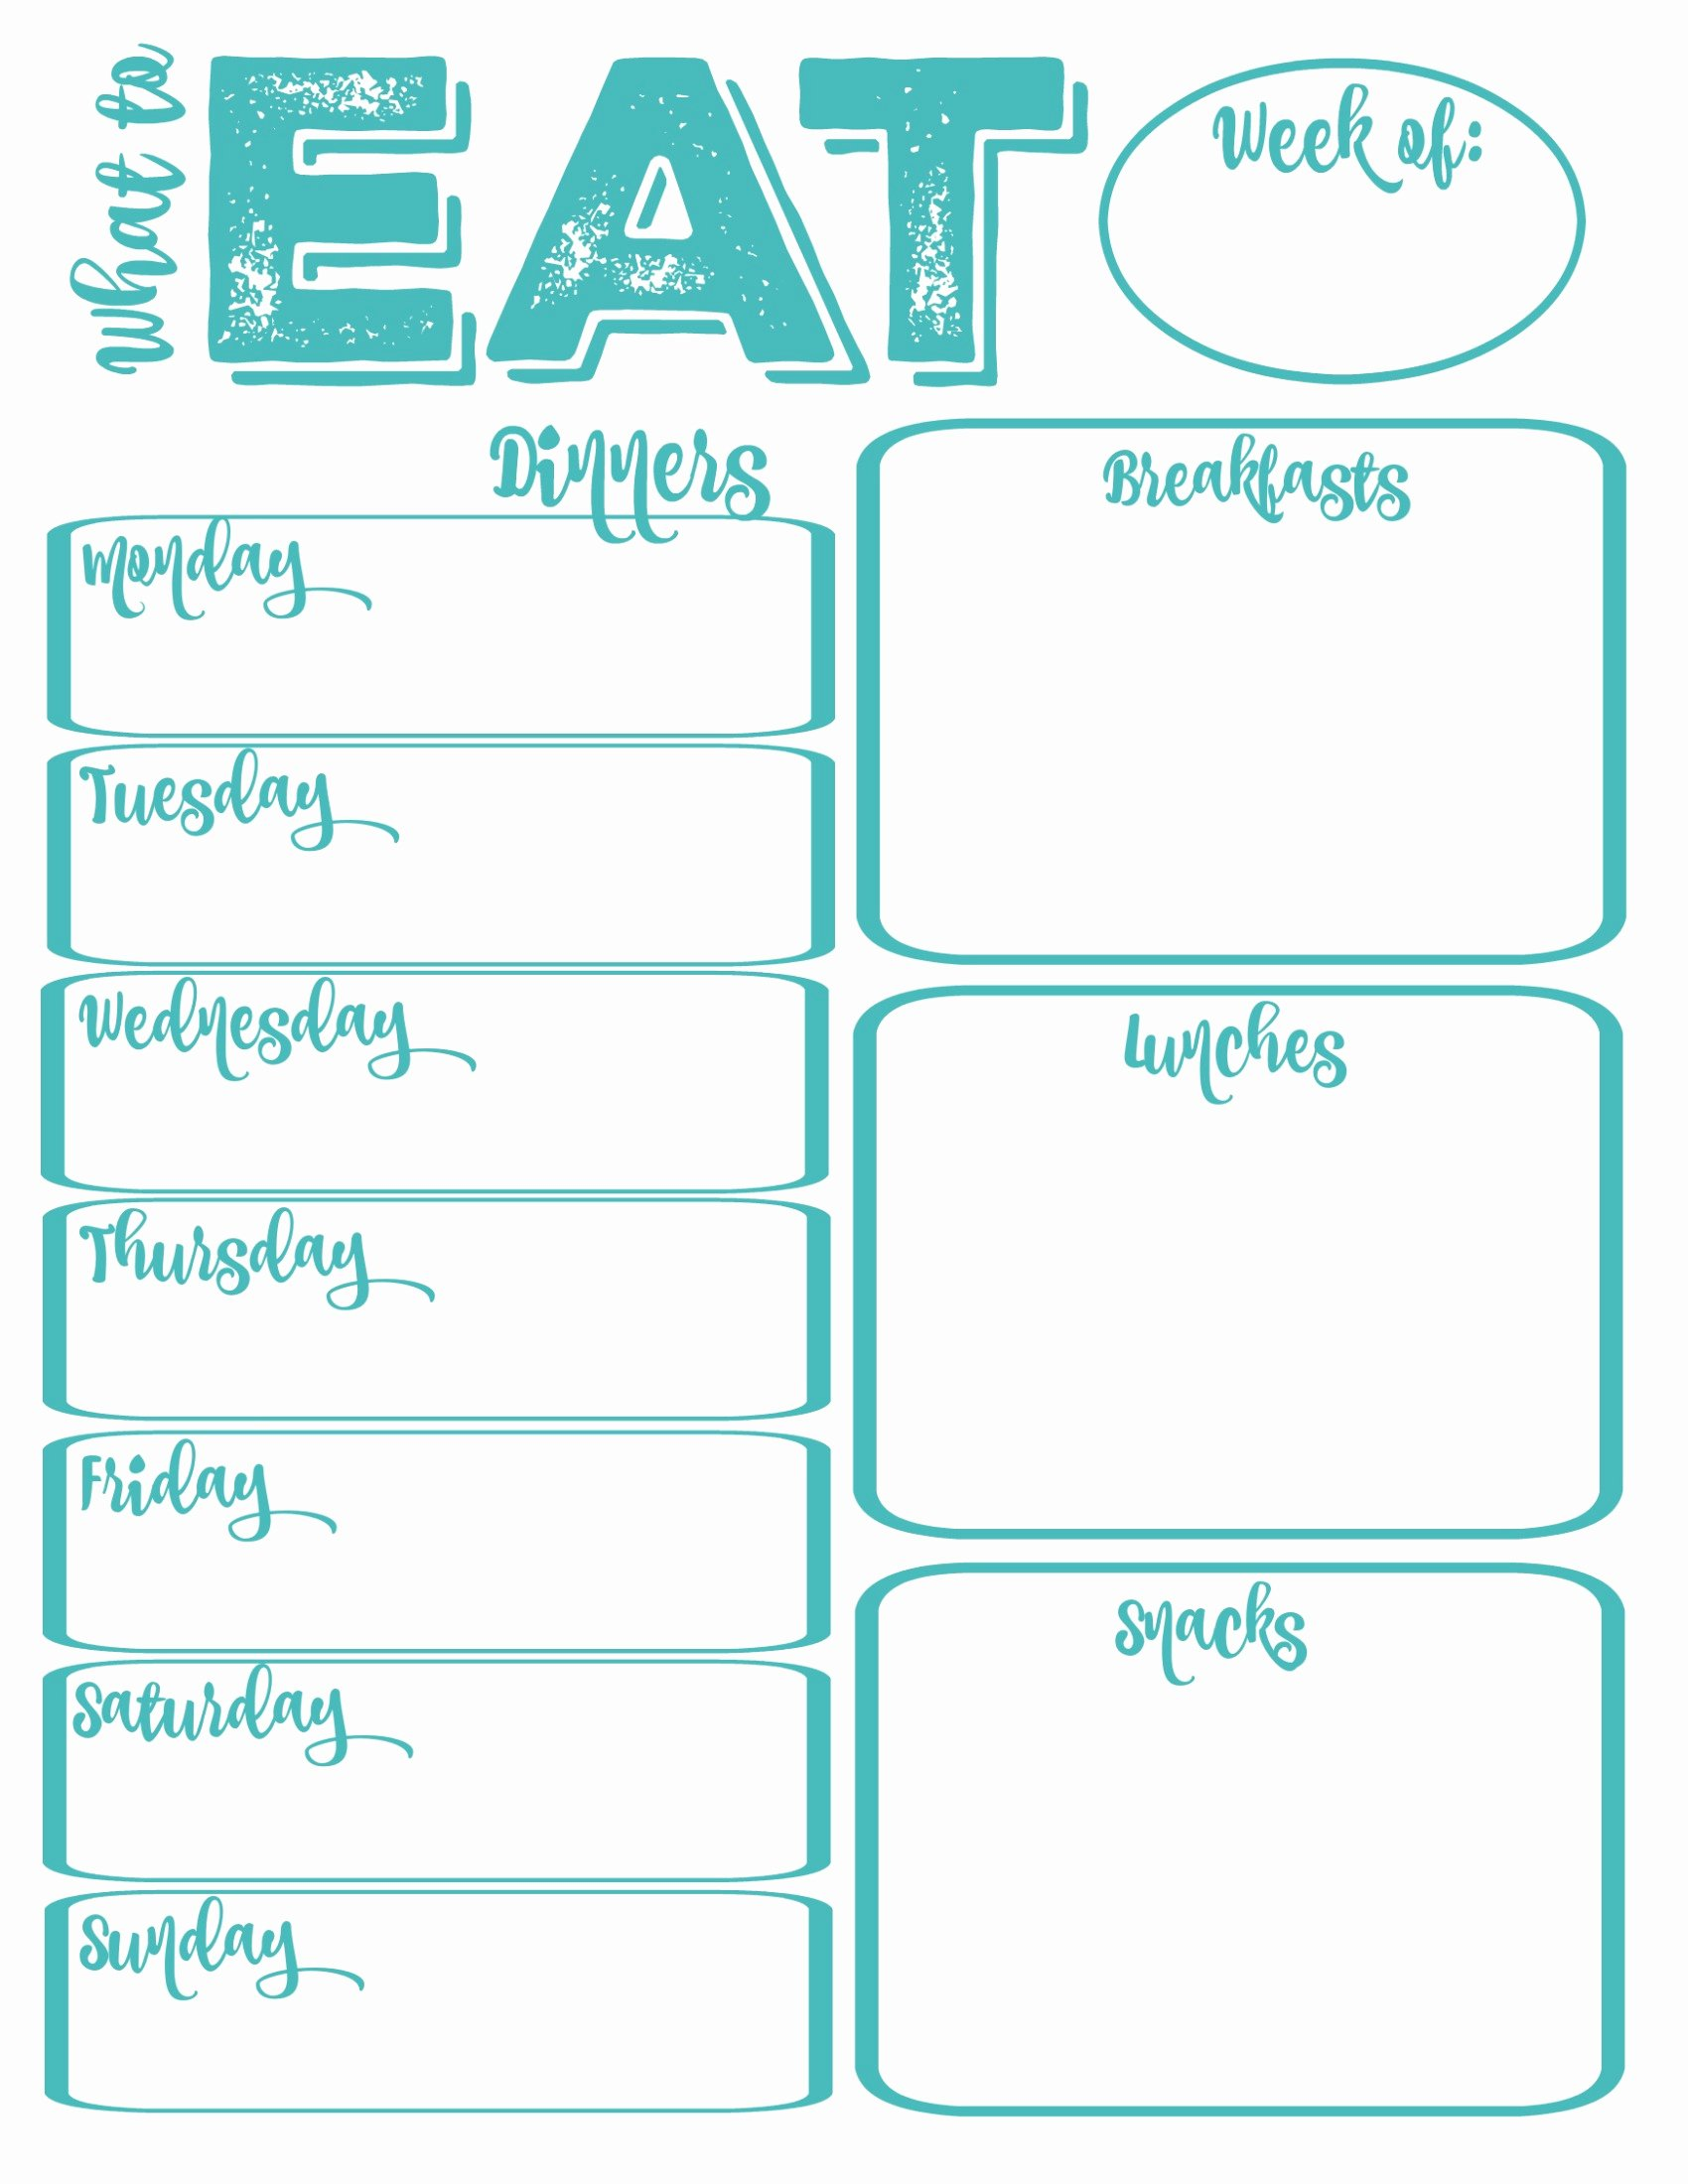 Meal Plan Template Free Inspirational Pantry Makeover Free Printable Weekly Meal Planner and